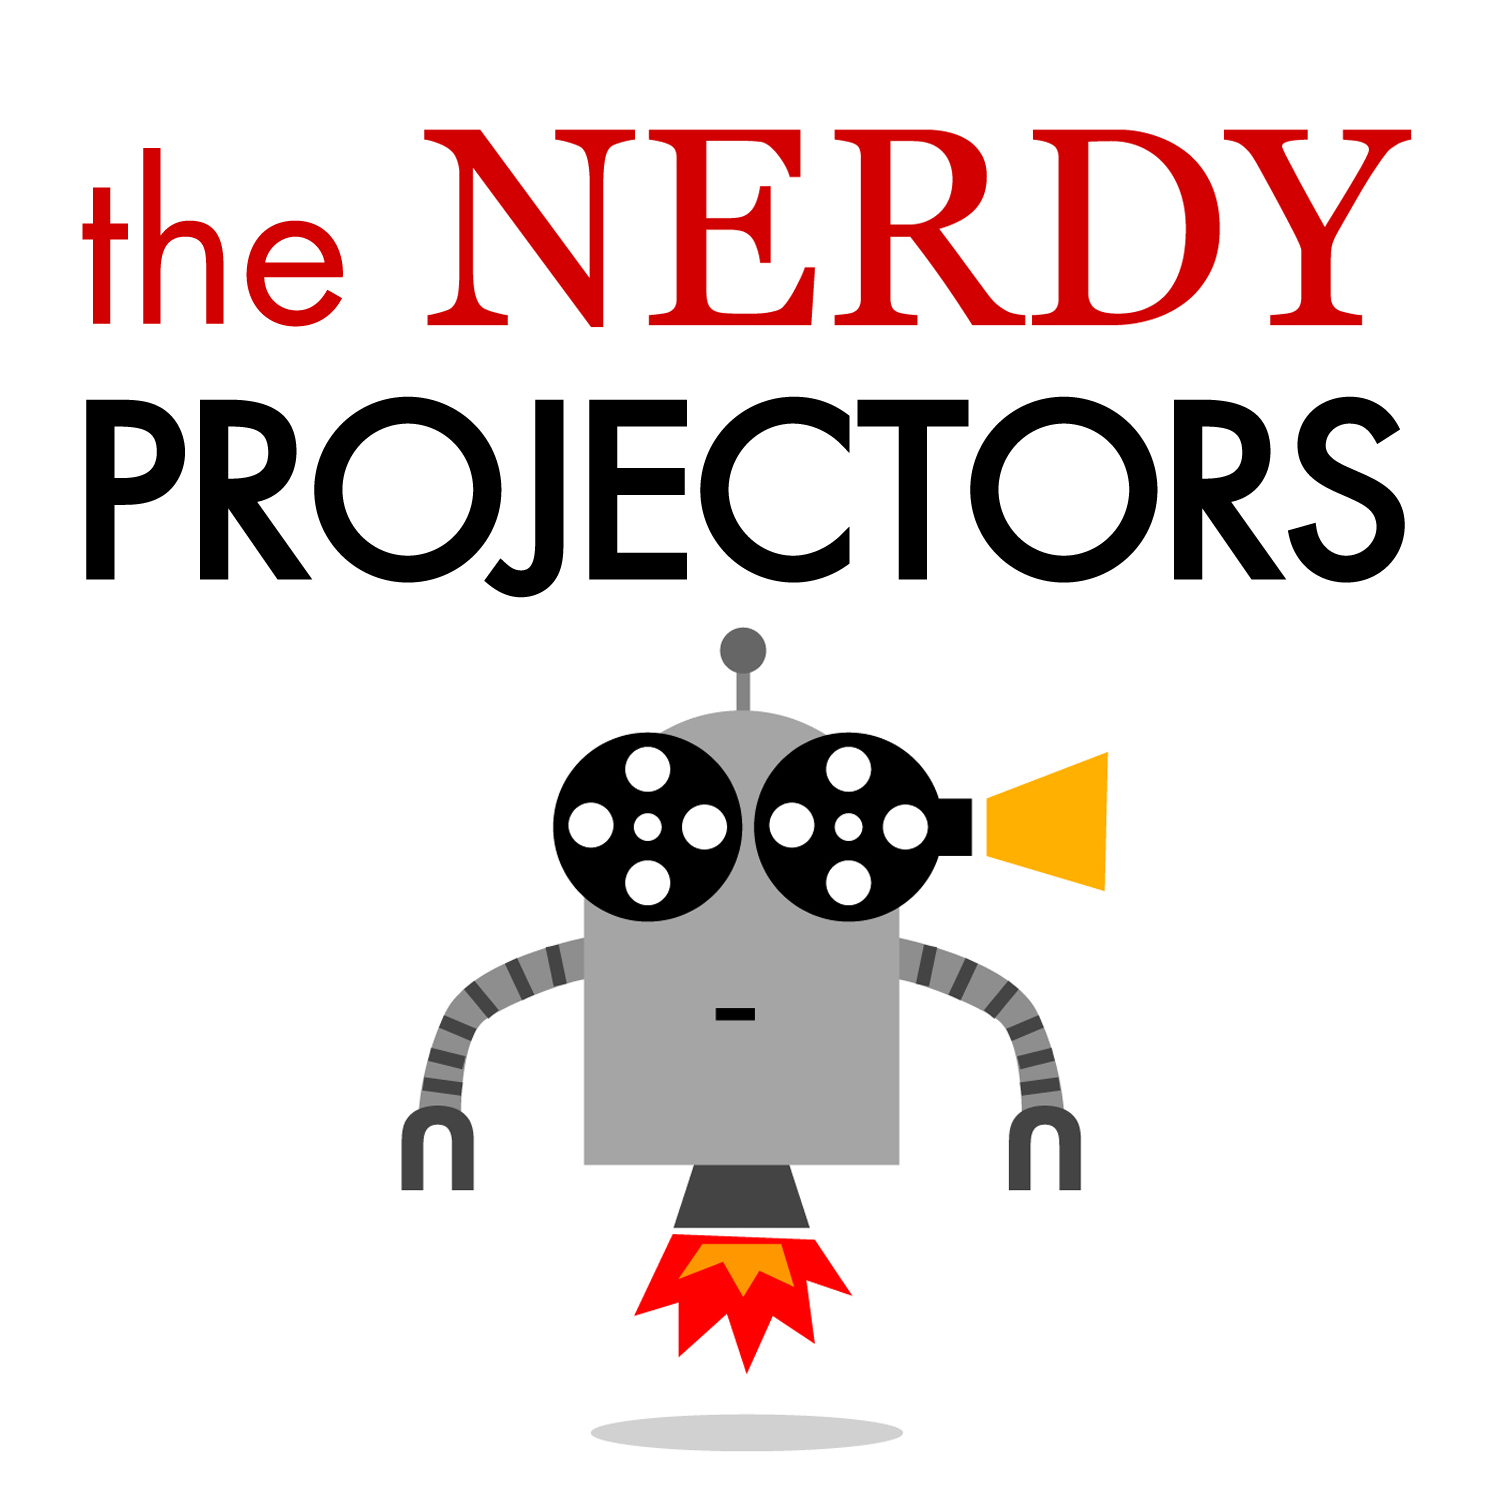 The Nerdy Projectors